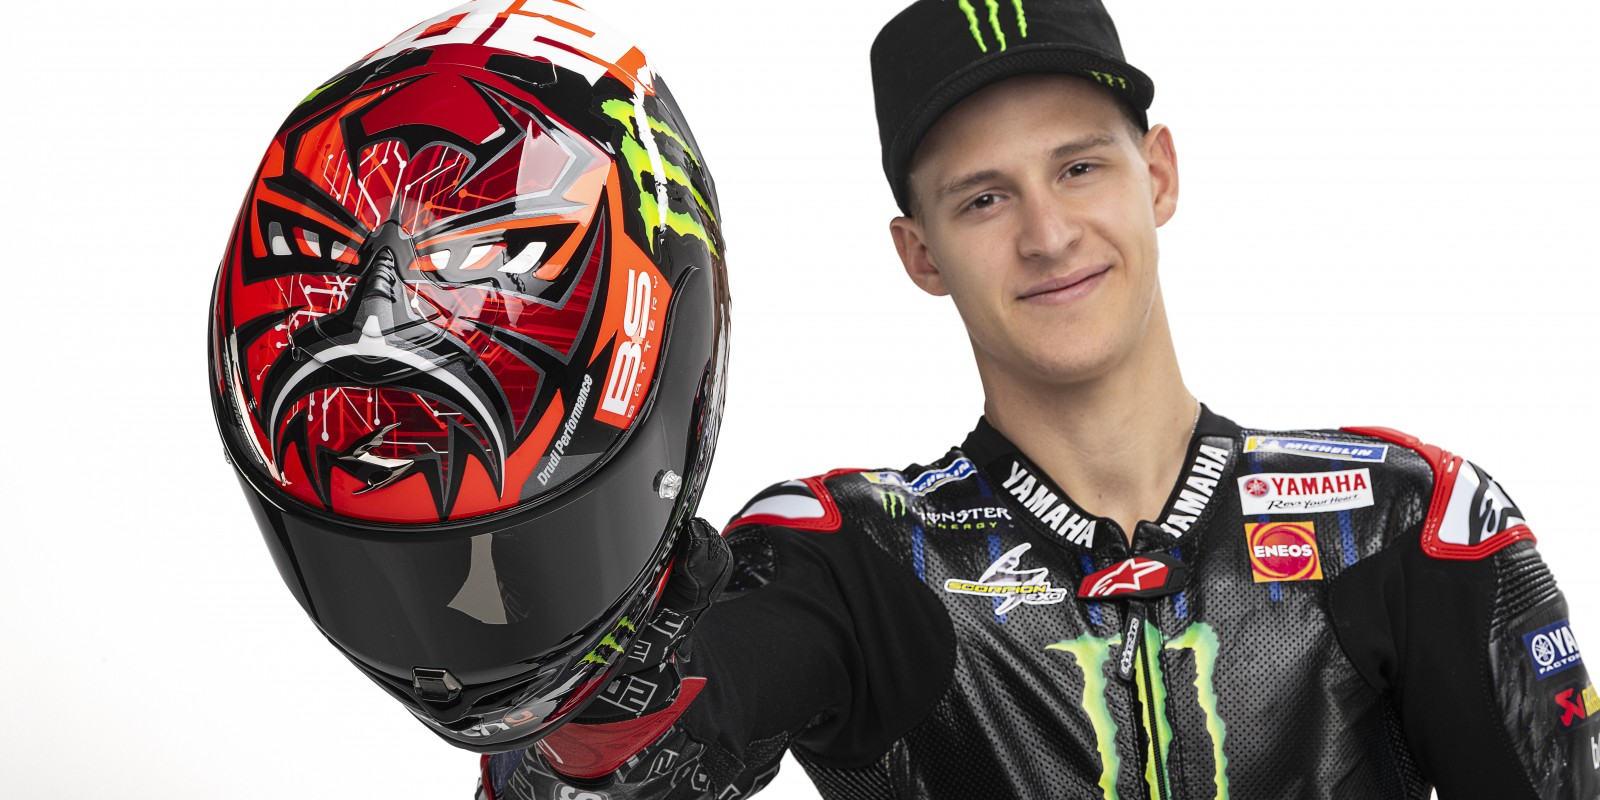 Launch images from the 2021 Factory Yamaha MotoGP Team